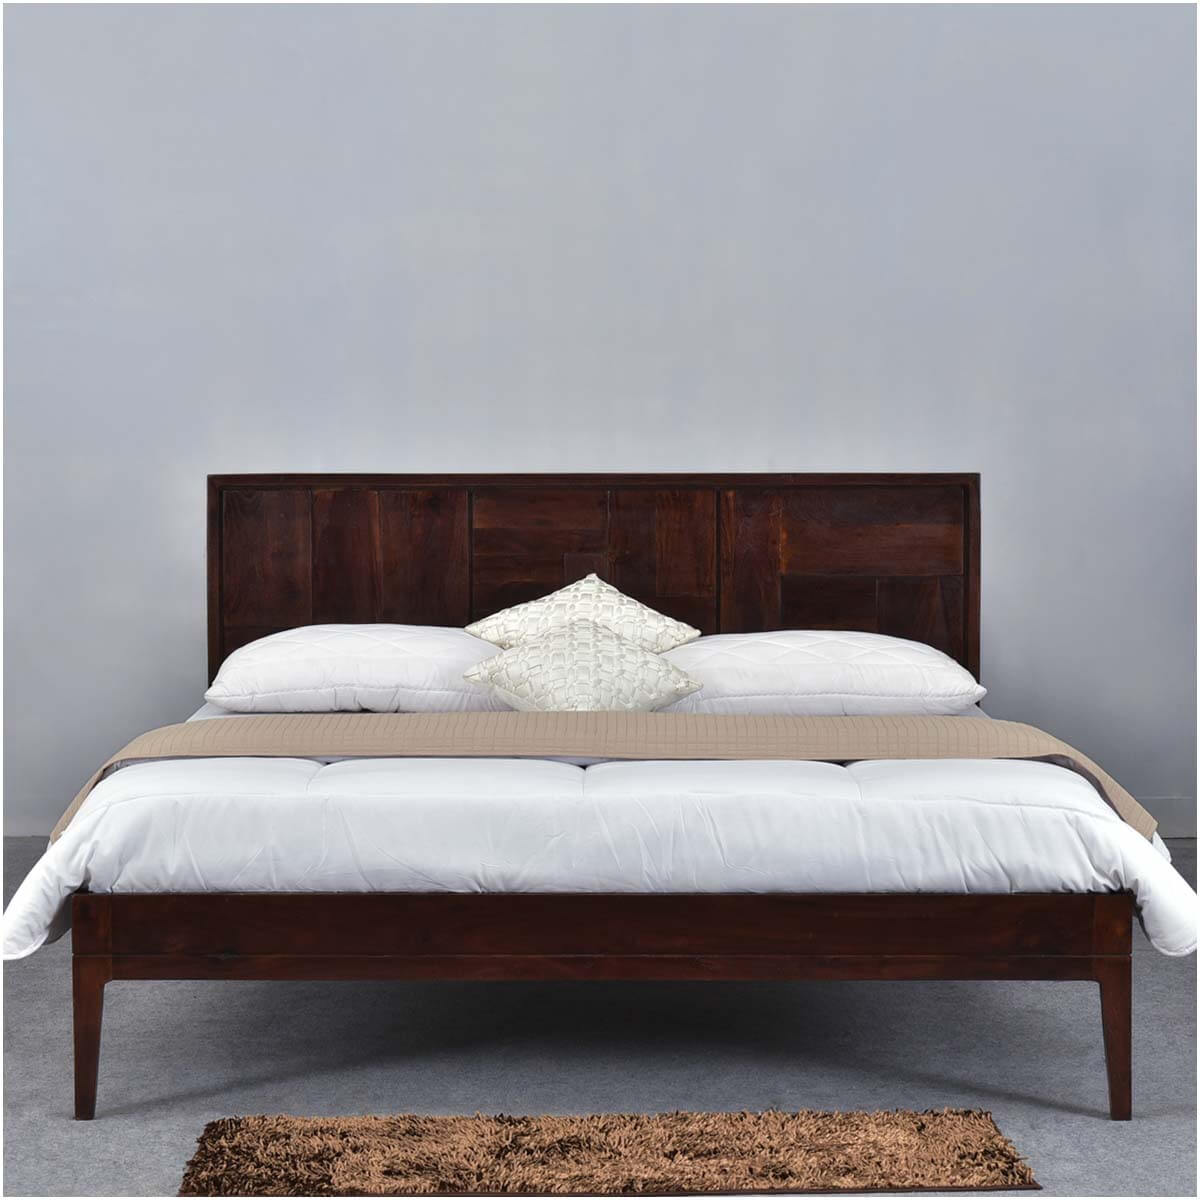 modern pioneer solid wood platform bed frame w headboard. Black Bedroom Furniture Sets. Home Design Ideas